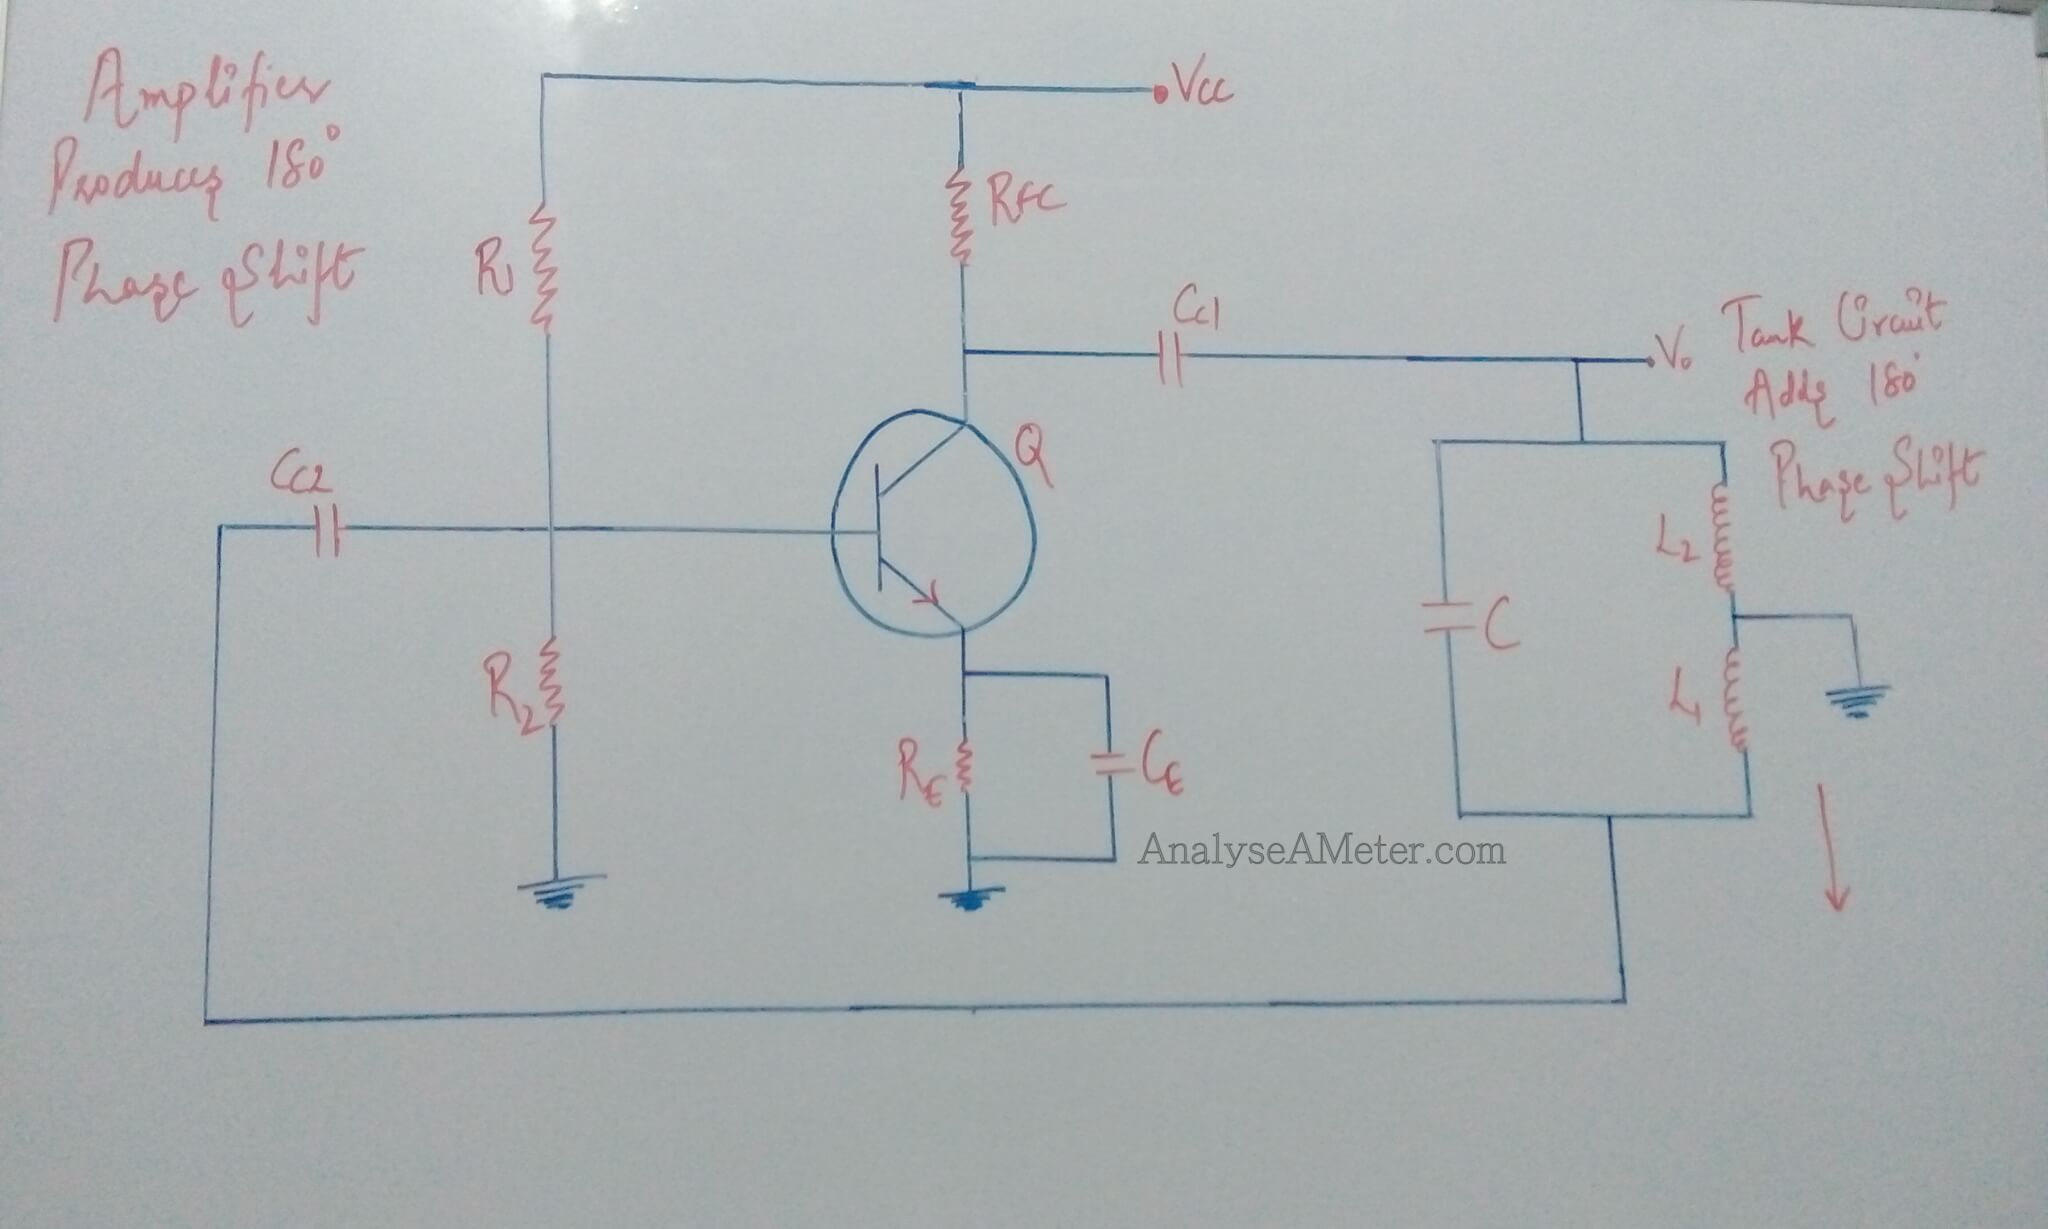 Hartley Oscillator Description Guide Analyse A Meter Amplifier Circuit Transistorized Electronic Circuits Diagram Image